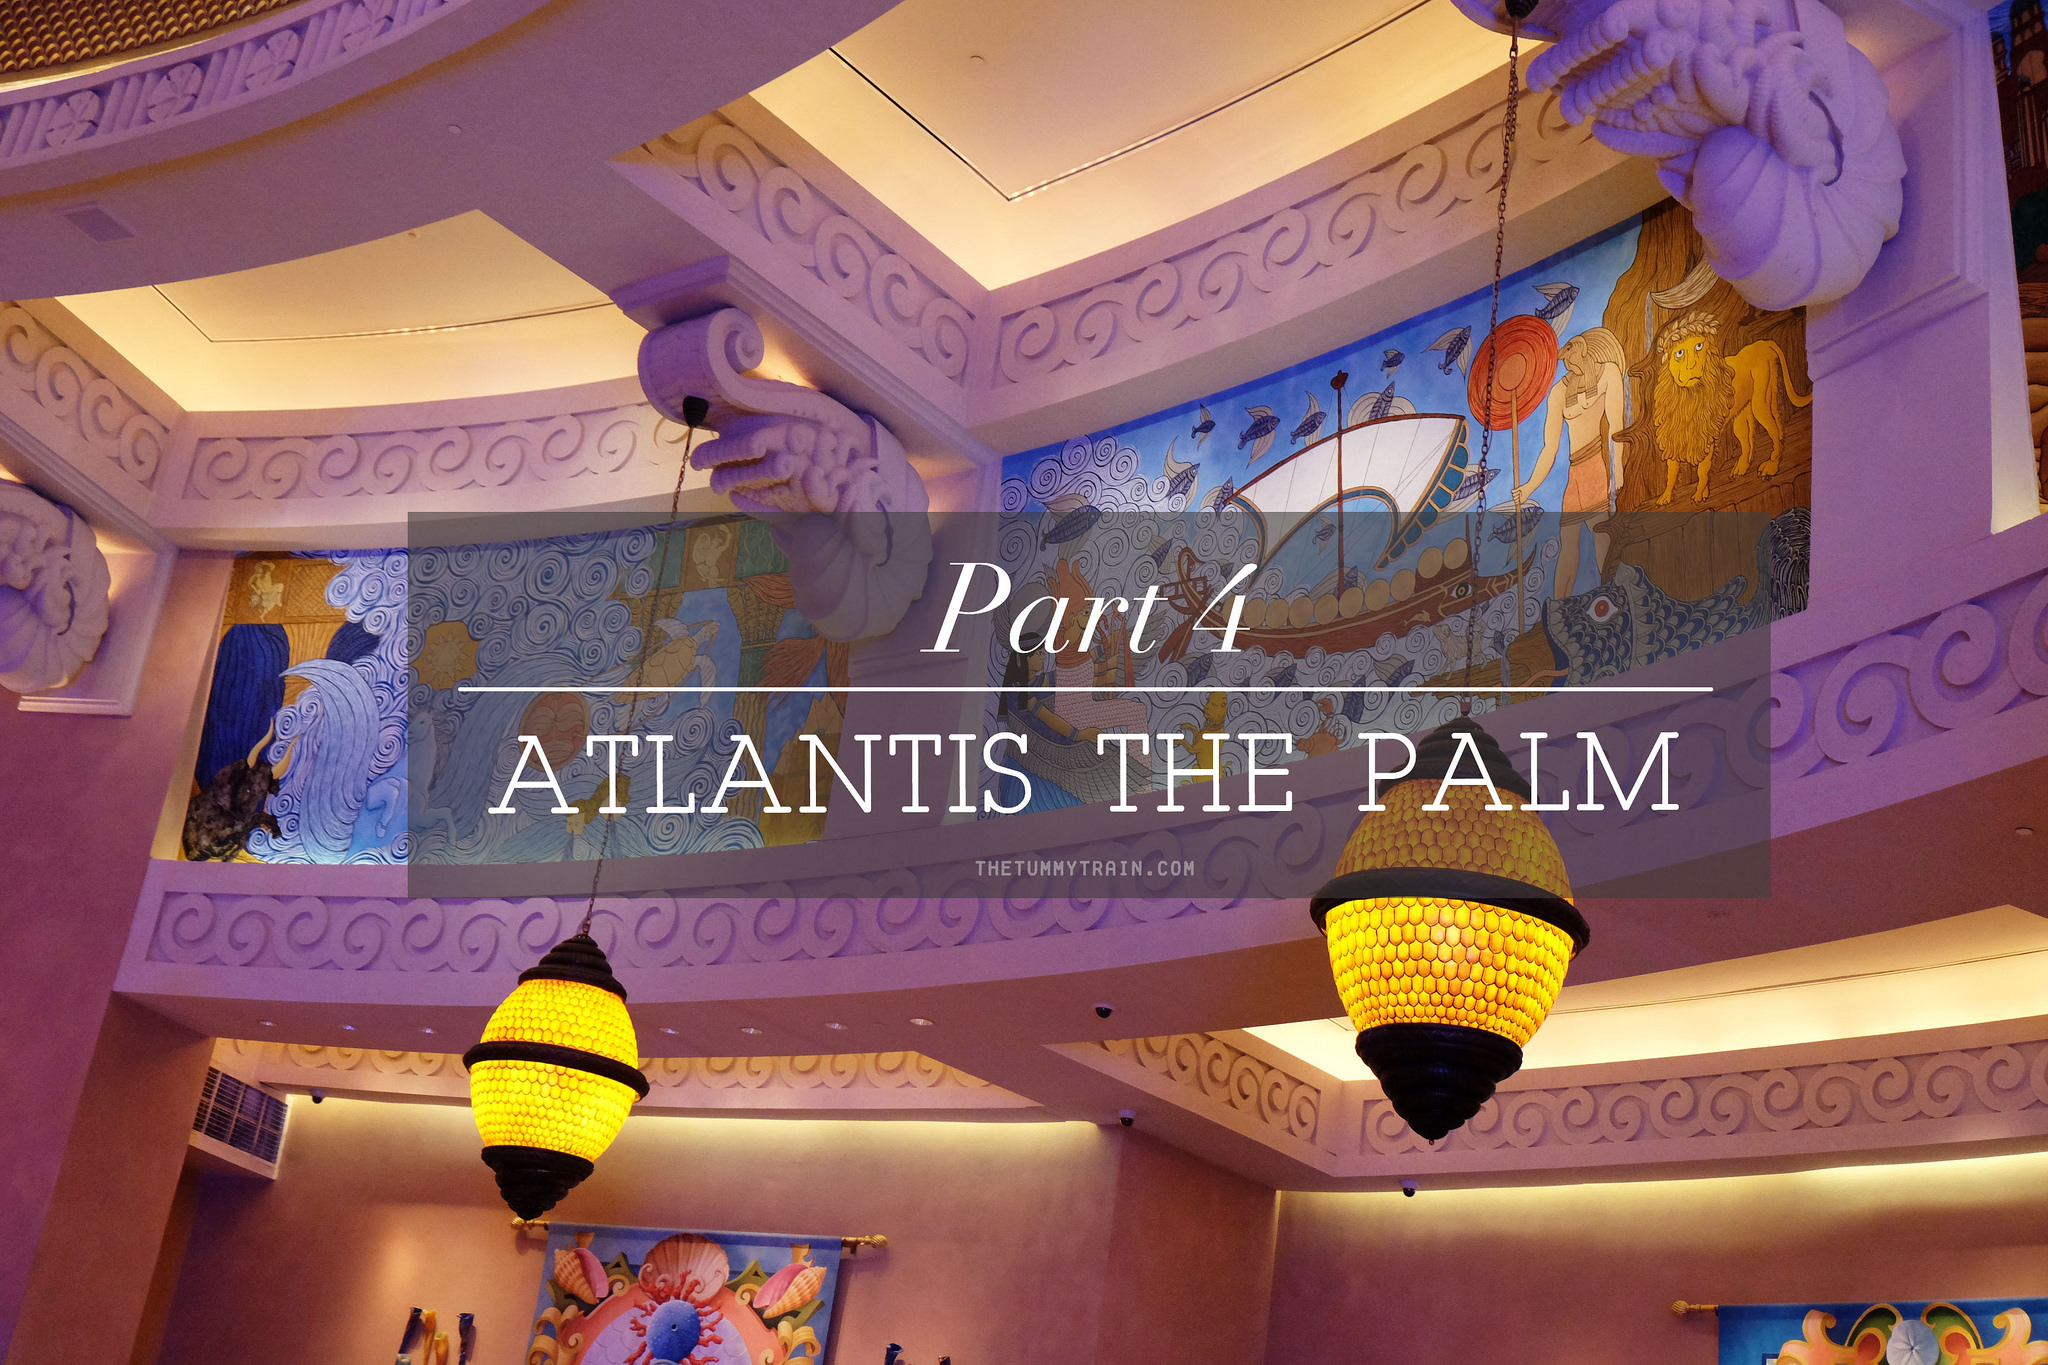 16484003790 2528af8eed b 1 - {Dubai 2014} 24 hours at Atlantis The Palm